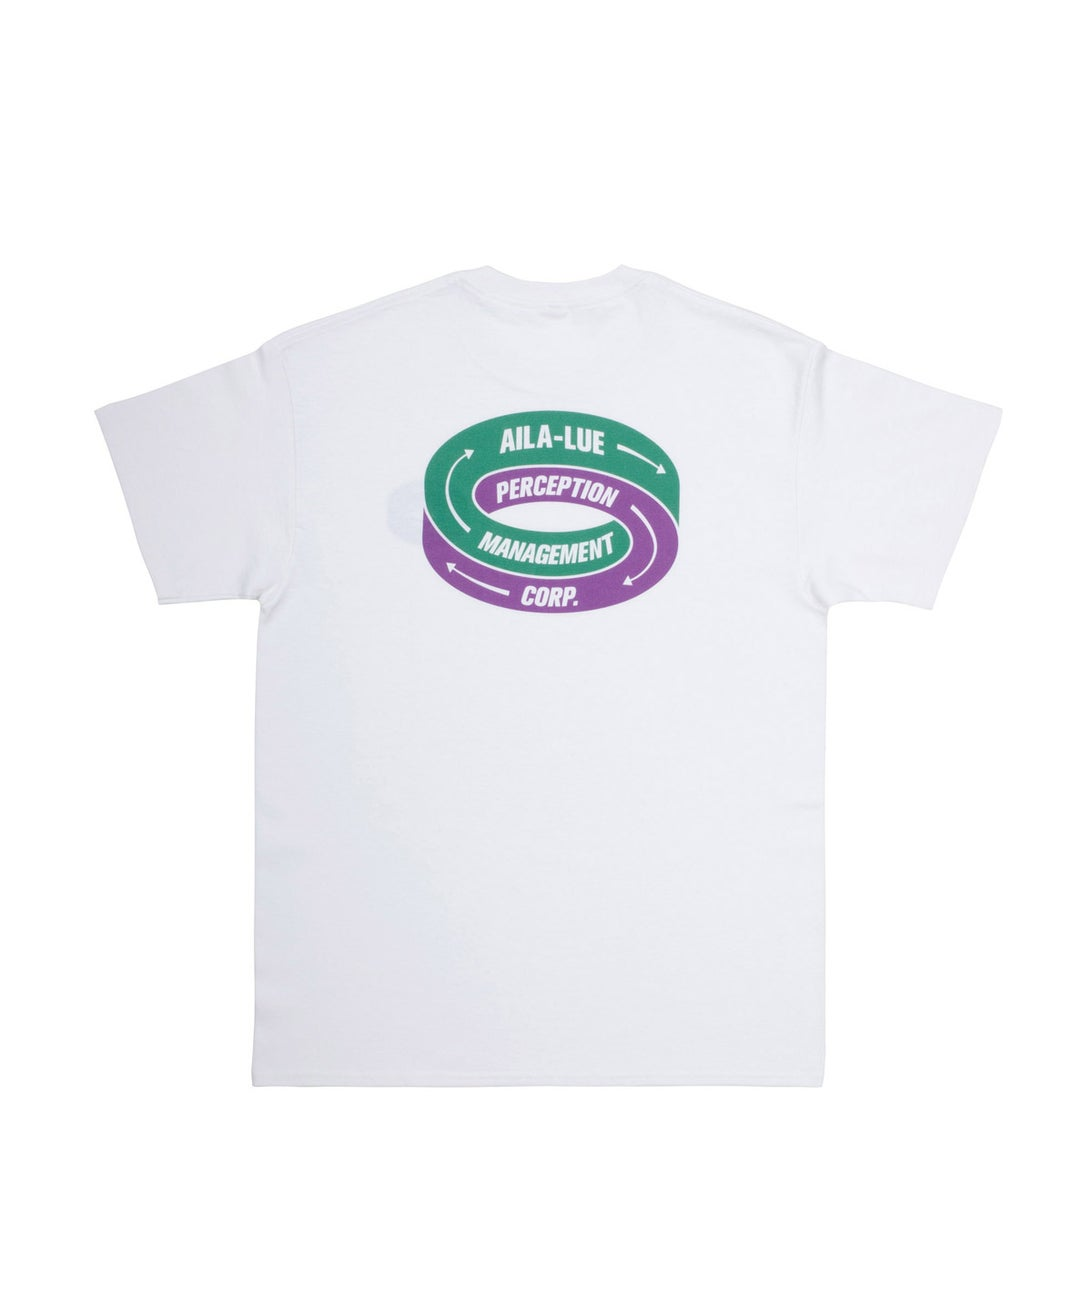 Image of PERCEPTION MANAGEMENT P/G T-SHIRT